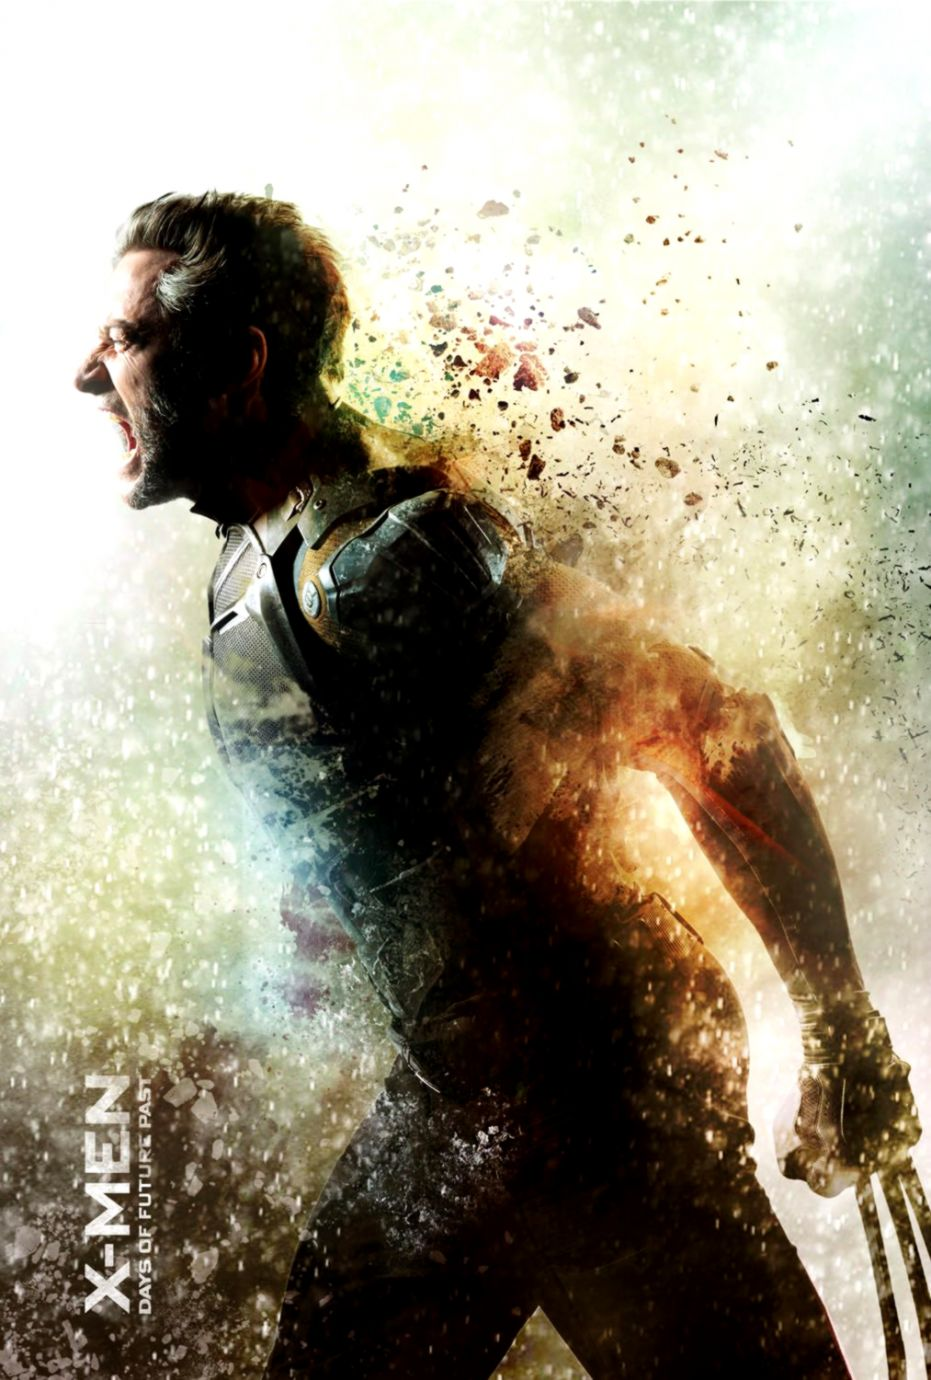 X Men Days Of Future Past Wallpaper Wolverine Zoom Wallpapers